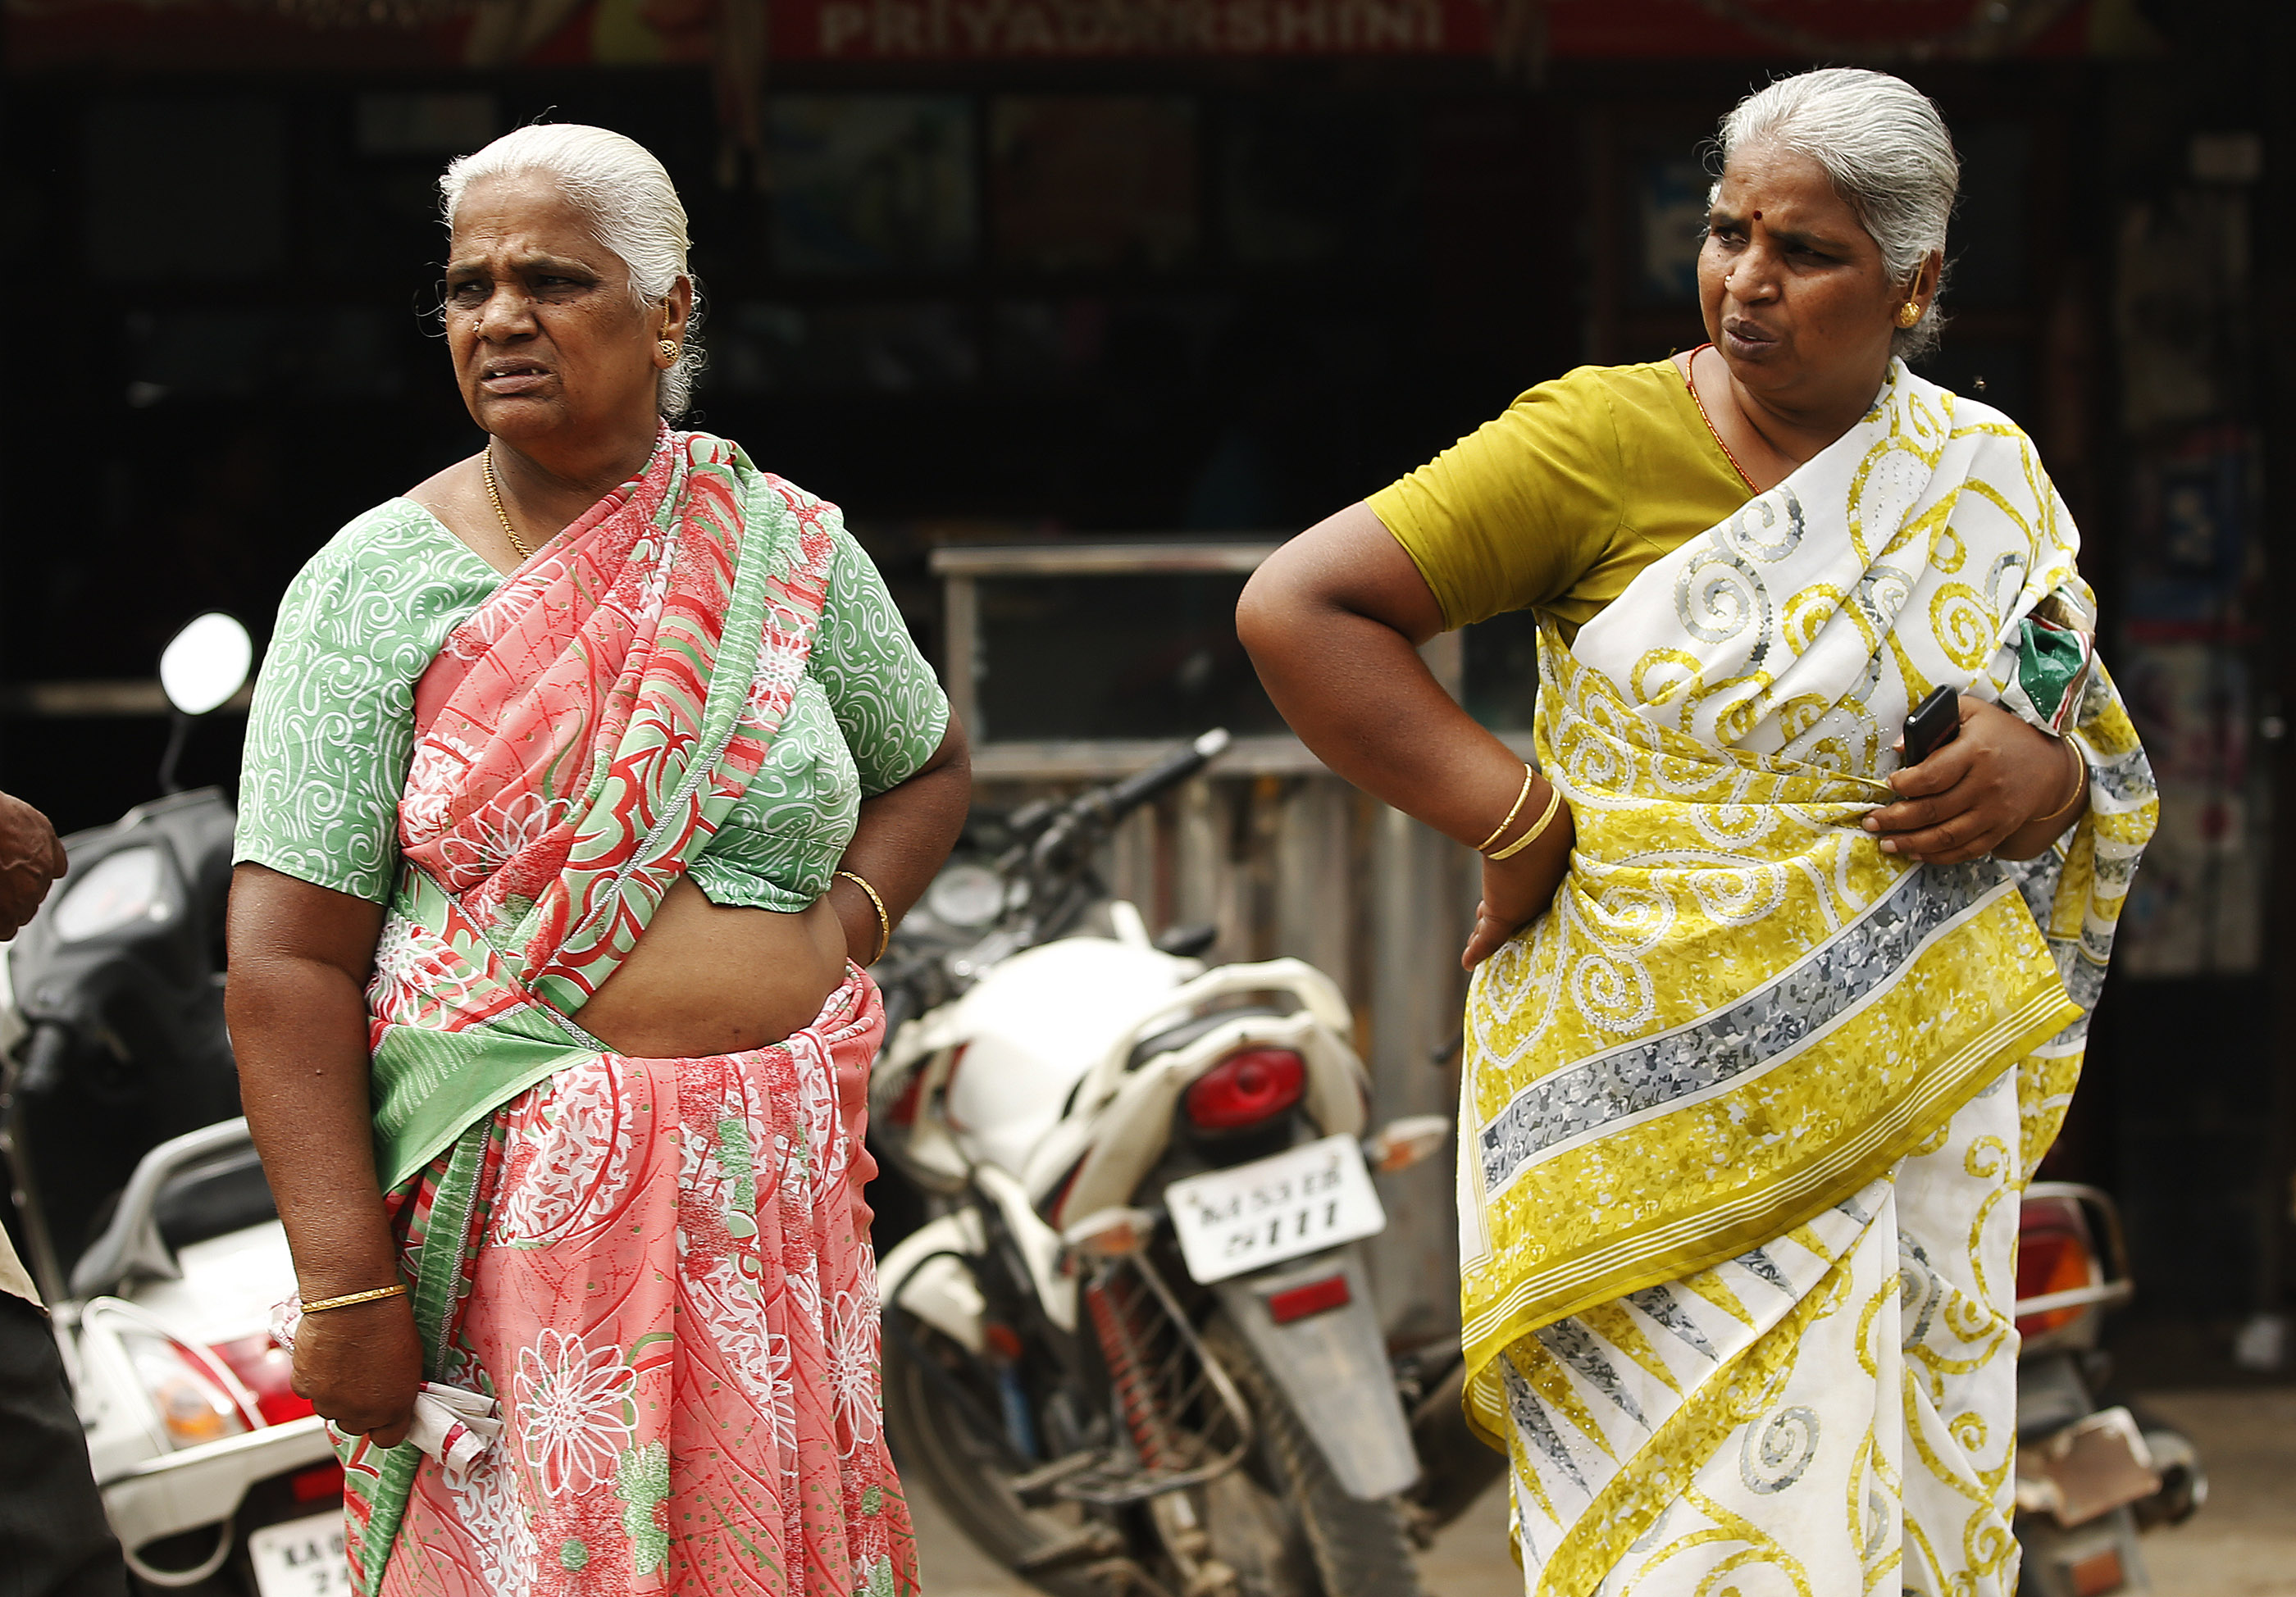 Two women stand on the street in Bengaluru, India, on Thursday, April 19, 2018.